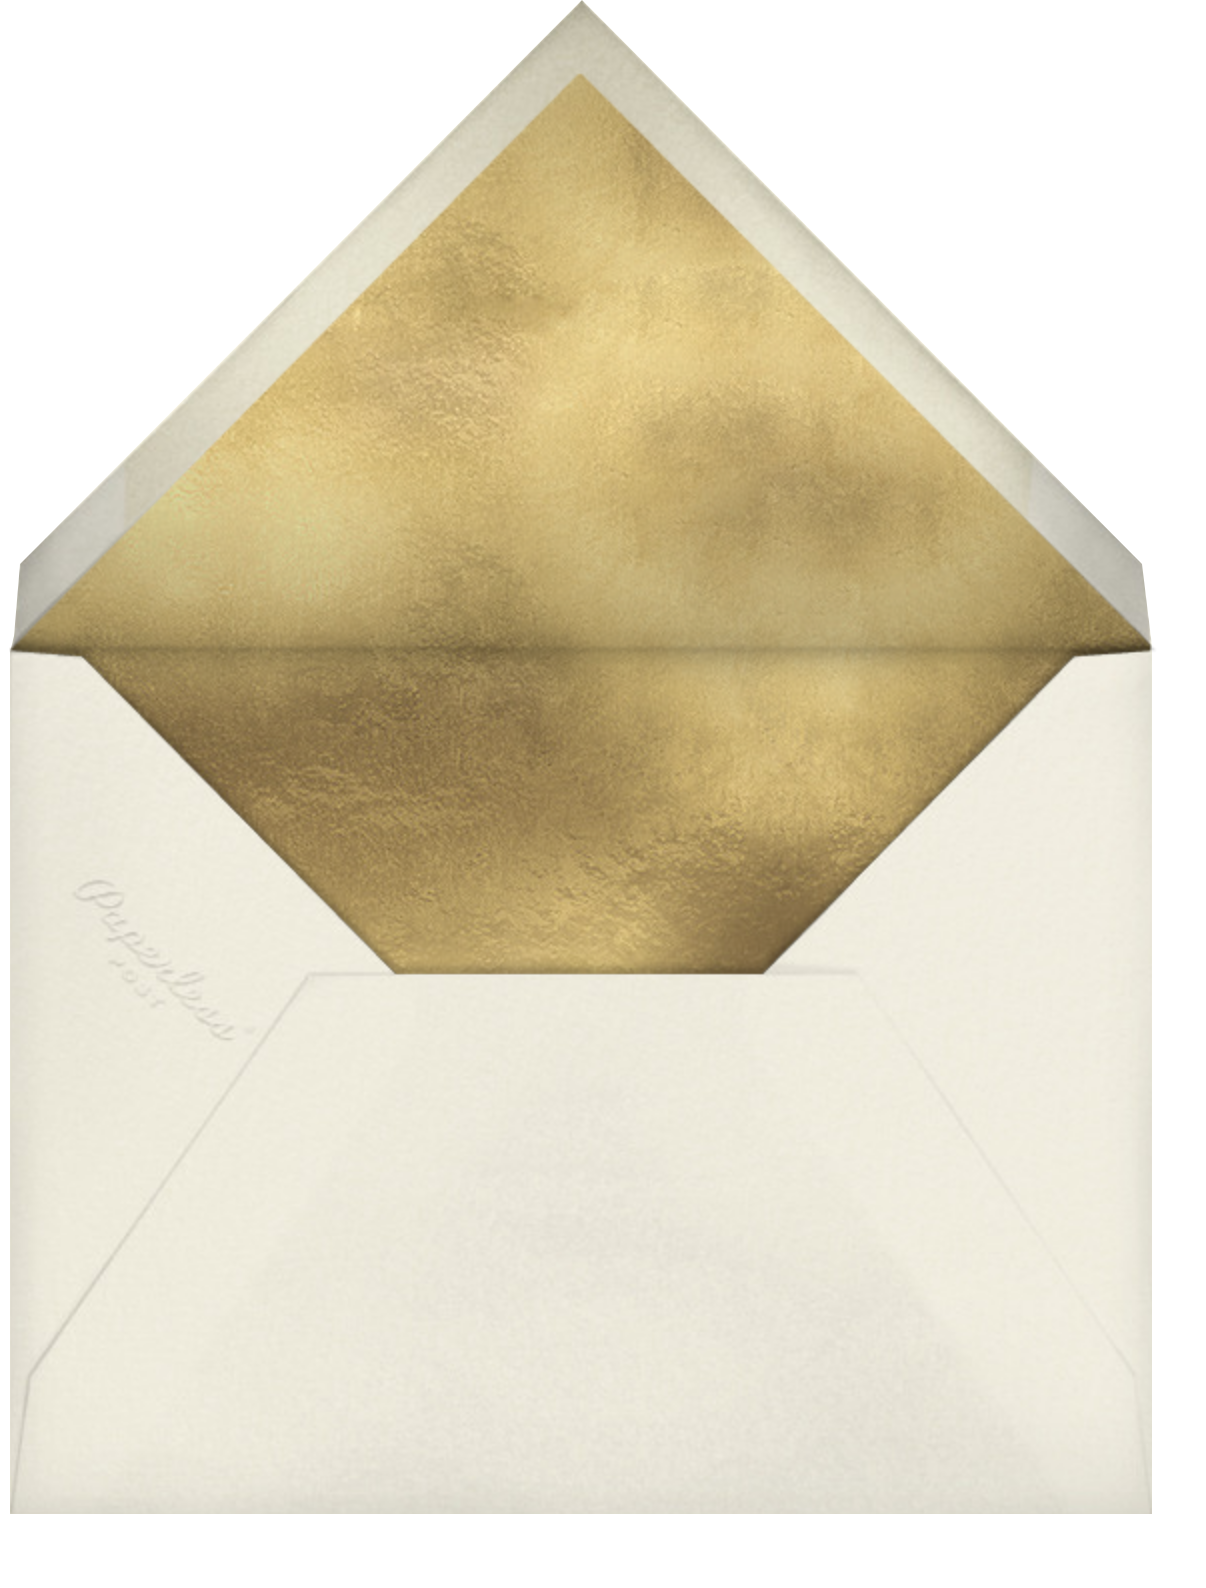 Perfect Spots Photo - Cream - kate spade new york - New Year - envelope back